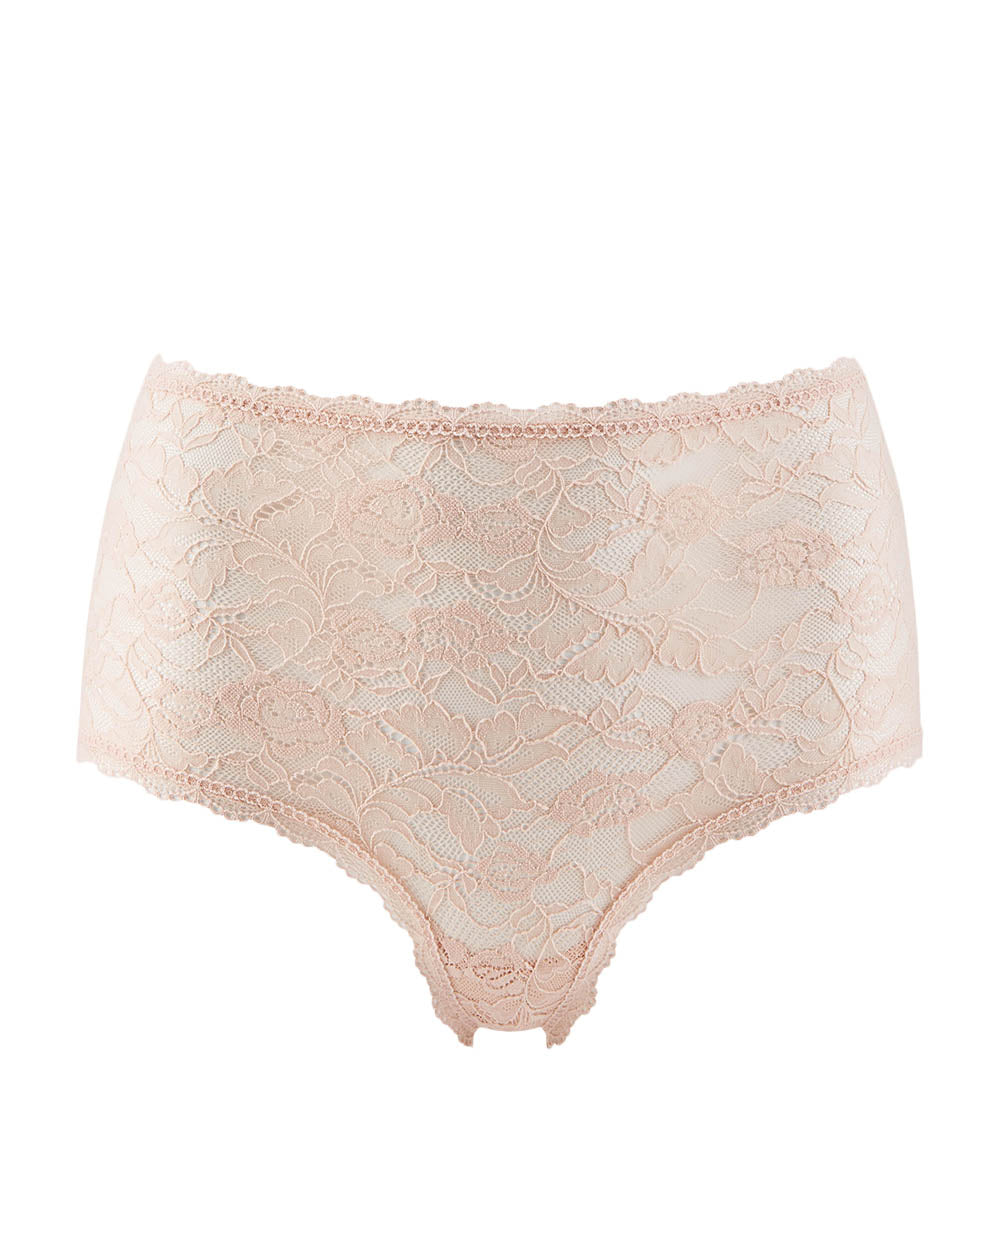 Rosessence Brief